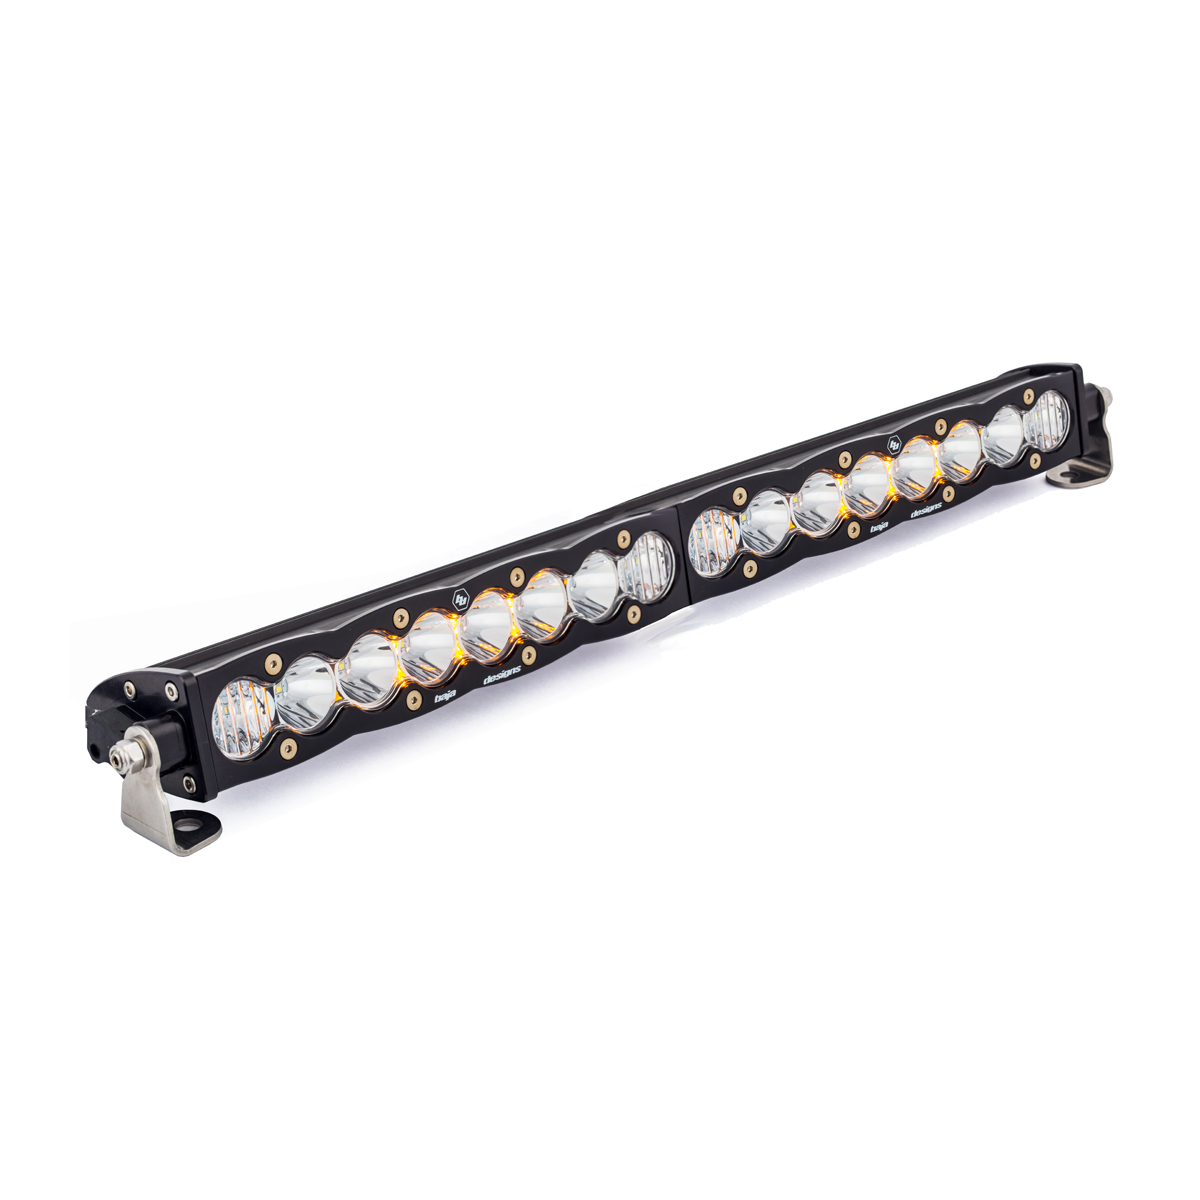 20 Inch LED Light Bar Single Straight Driving Combo Pattern S8 Series Baja Designs